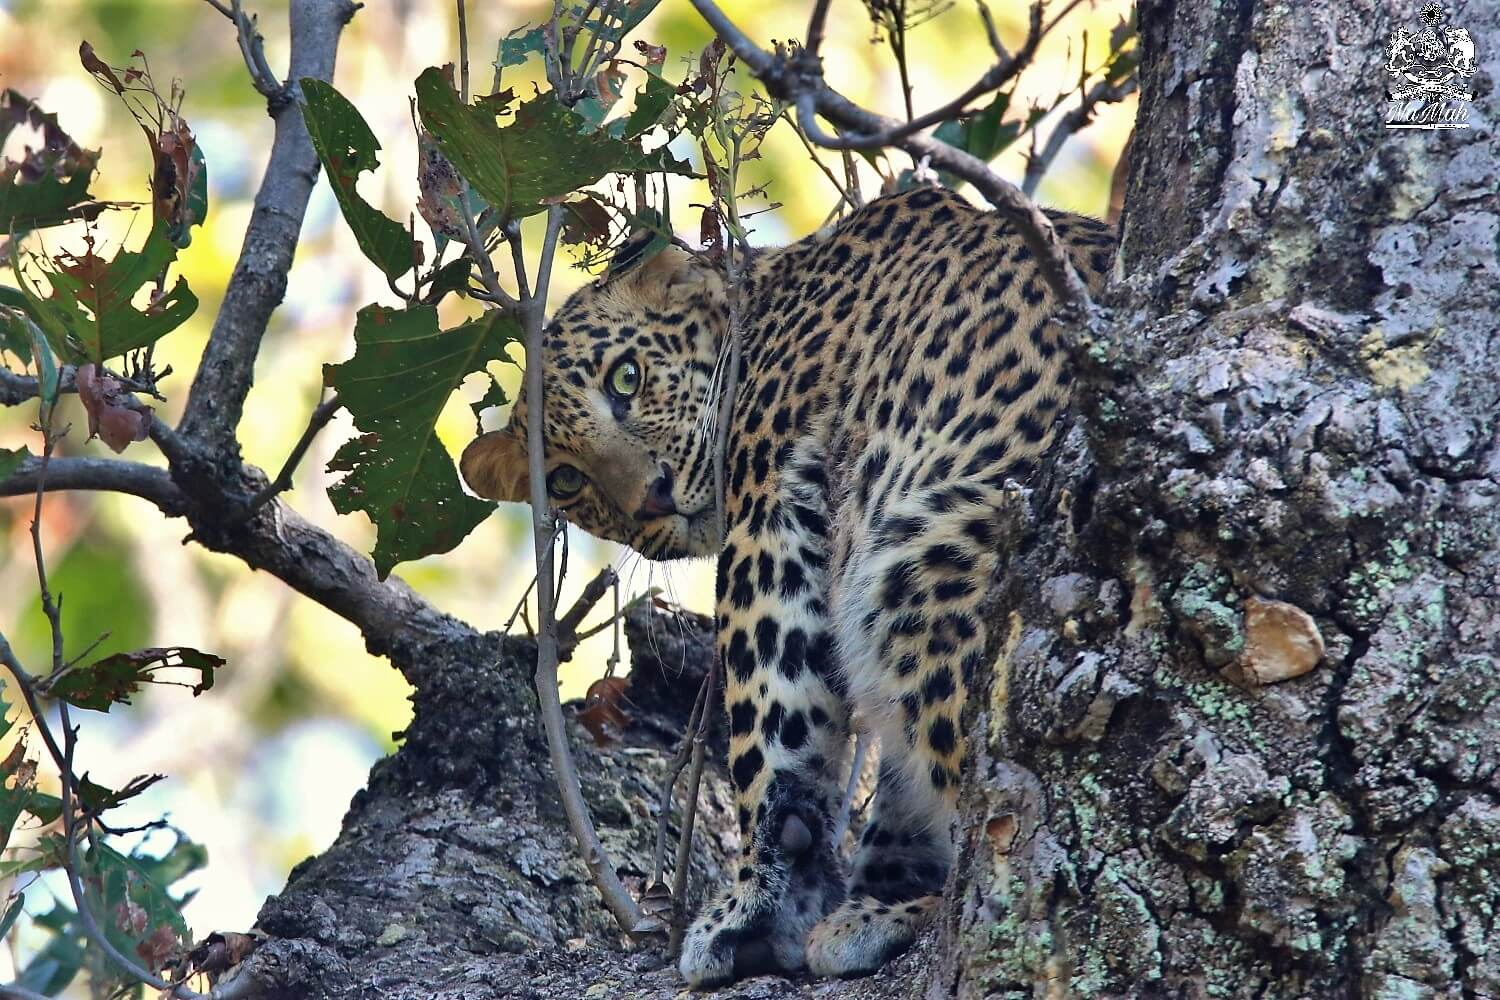 Leopard staring at photogrpaher from tree